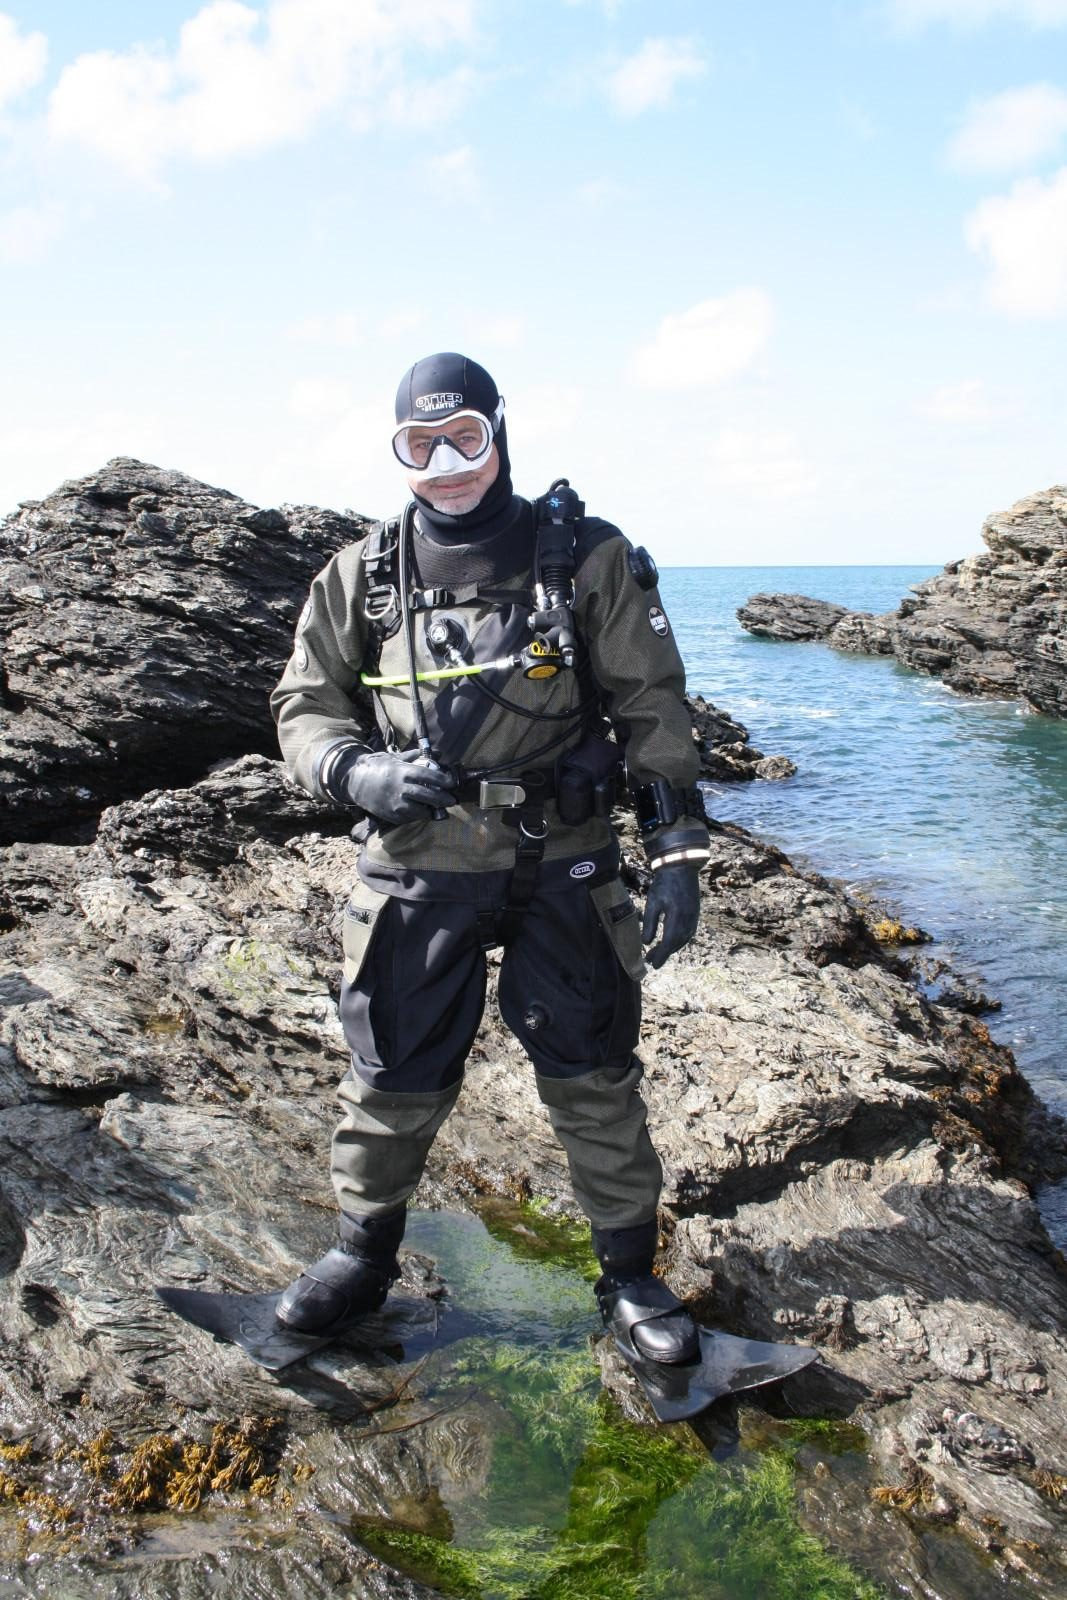 Otter Watersports Atlantic HD Kevlar Drysuit - Scuba Diving Equipment test